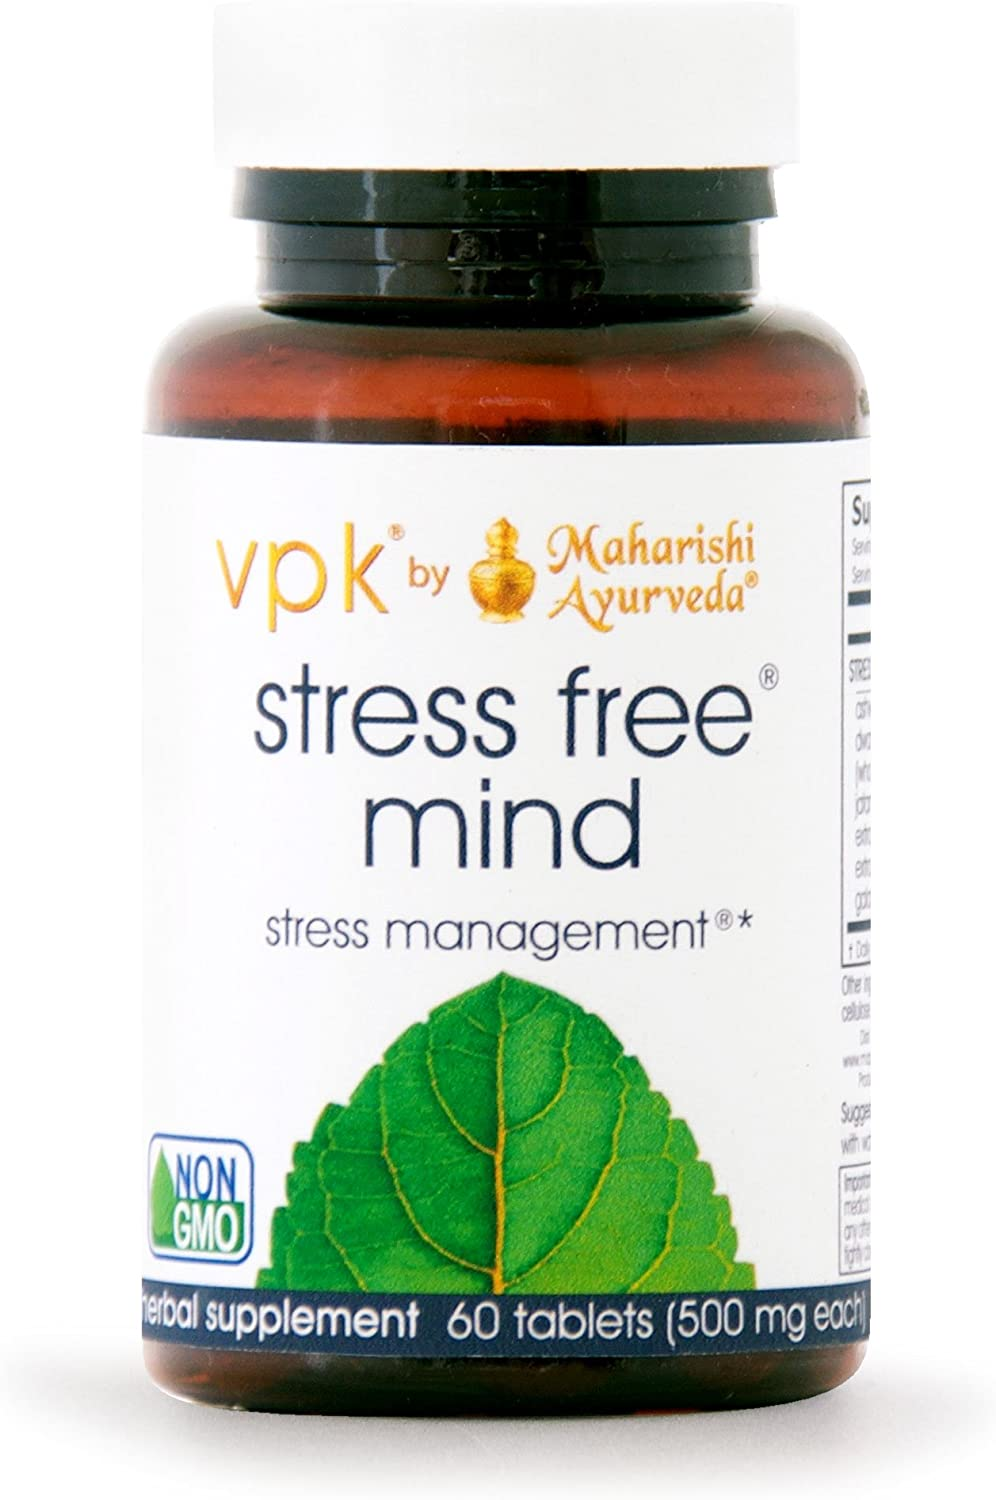 Stress Free Mind 60 Herbal Tablets – 500 mg ea. Natural Resistance to Daily Mental Stress Fatigue Maintain Mental Calm Alertness